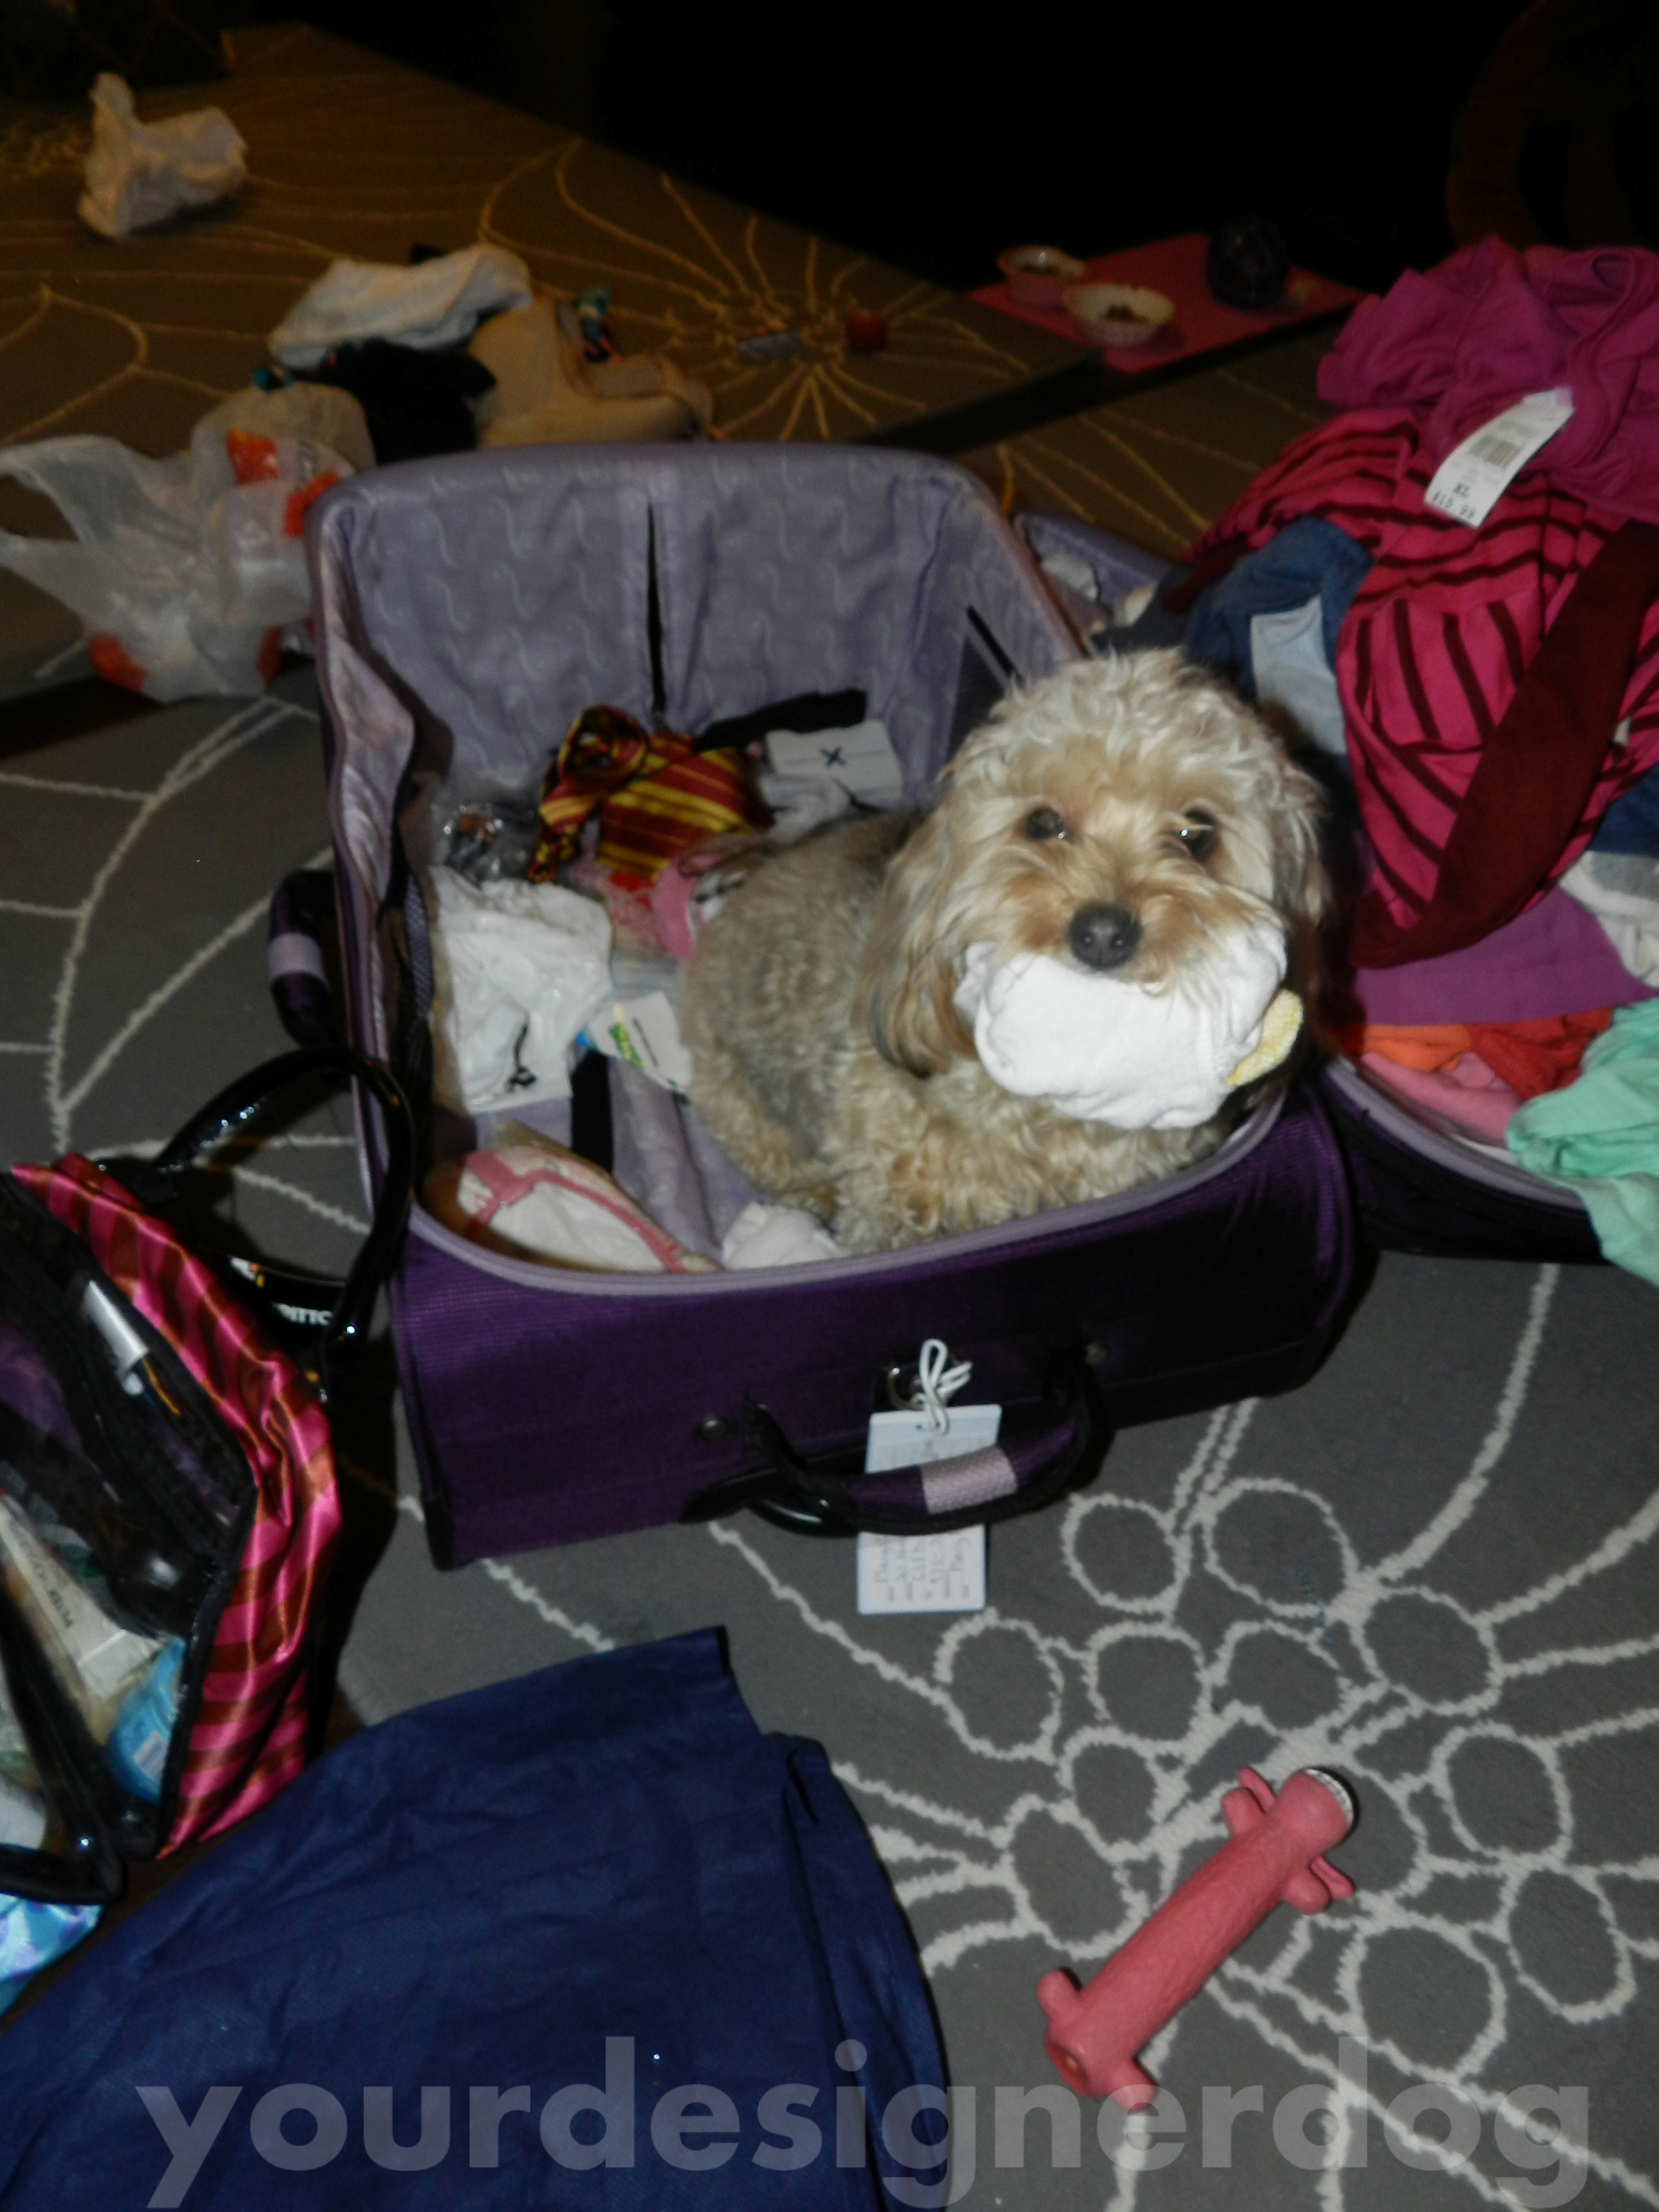 You Can't Leave Without Socks!